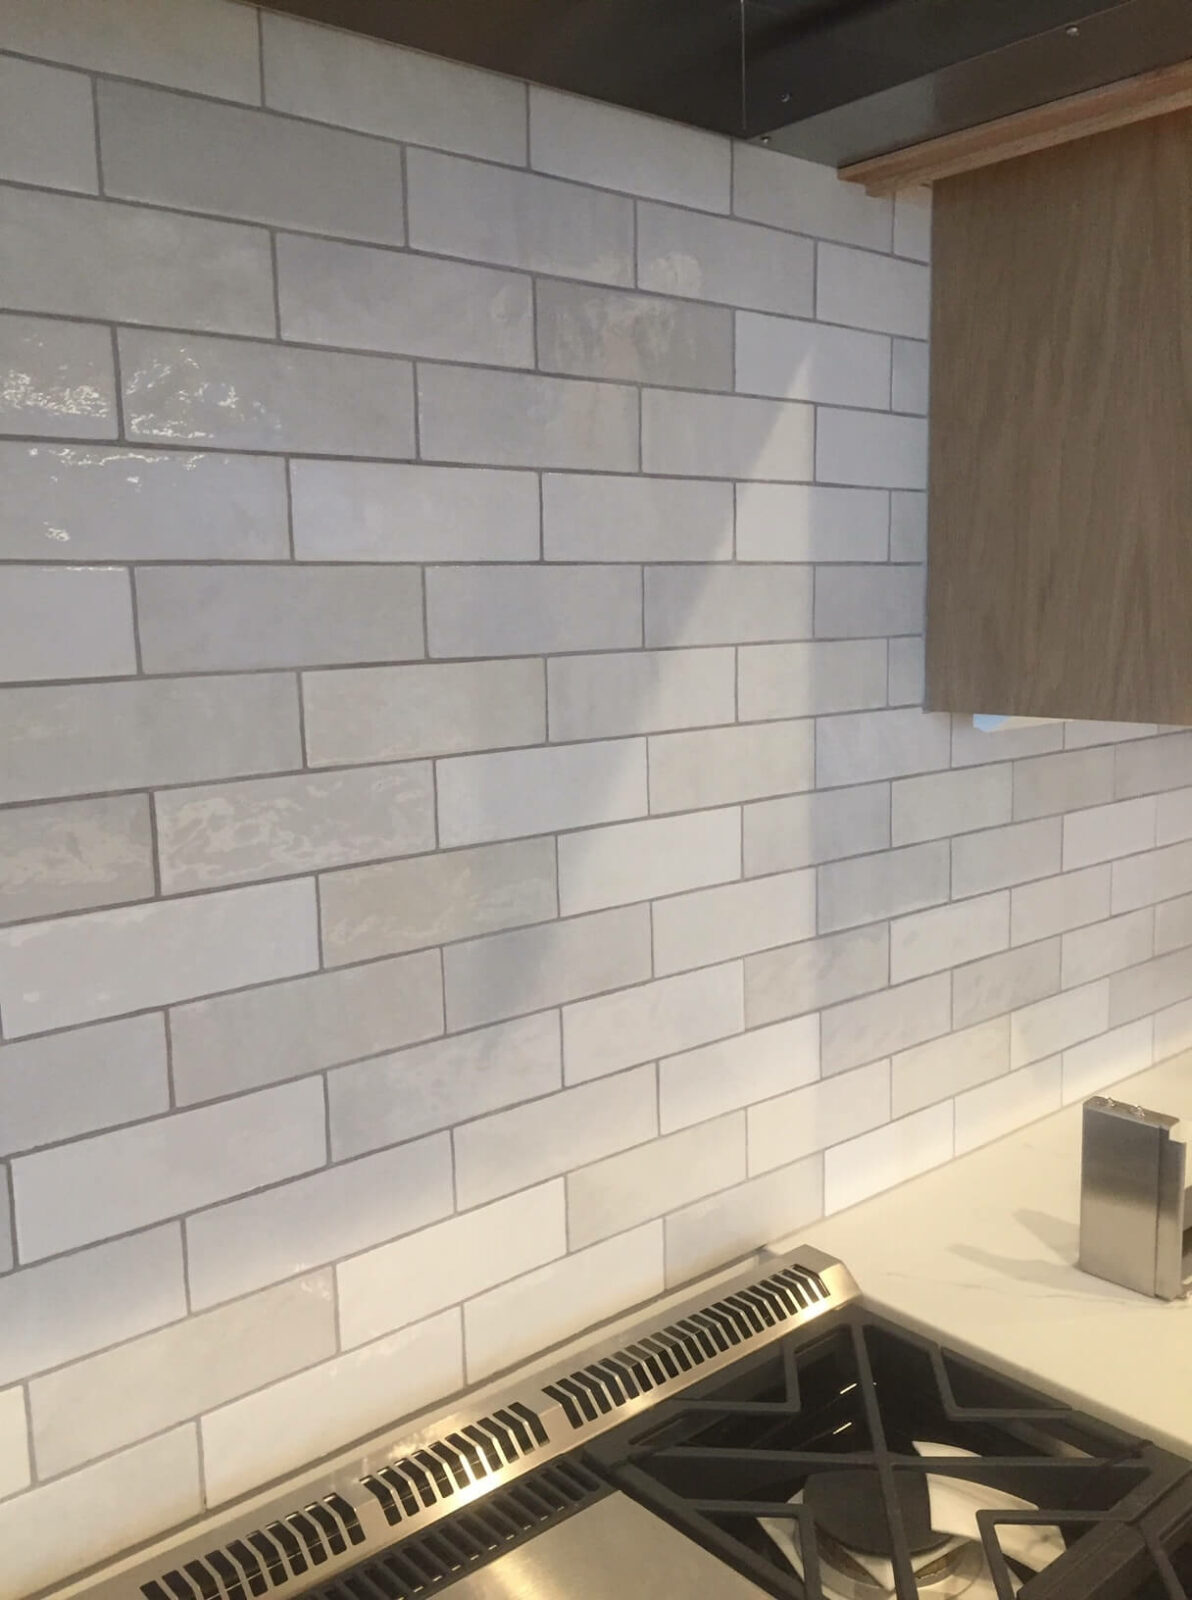 Tile backslpash in the kitchen | West Michigan Carpet Center